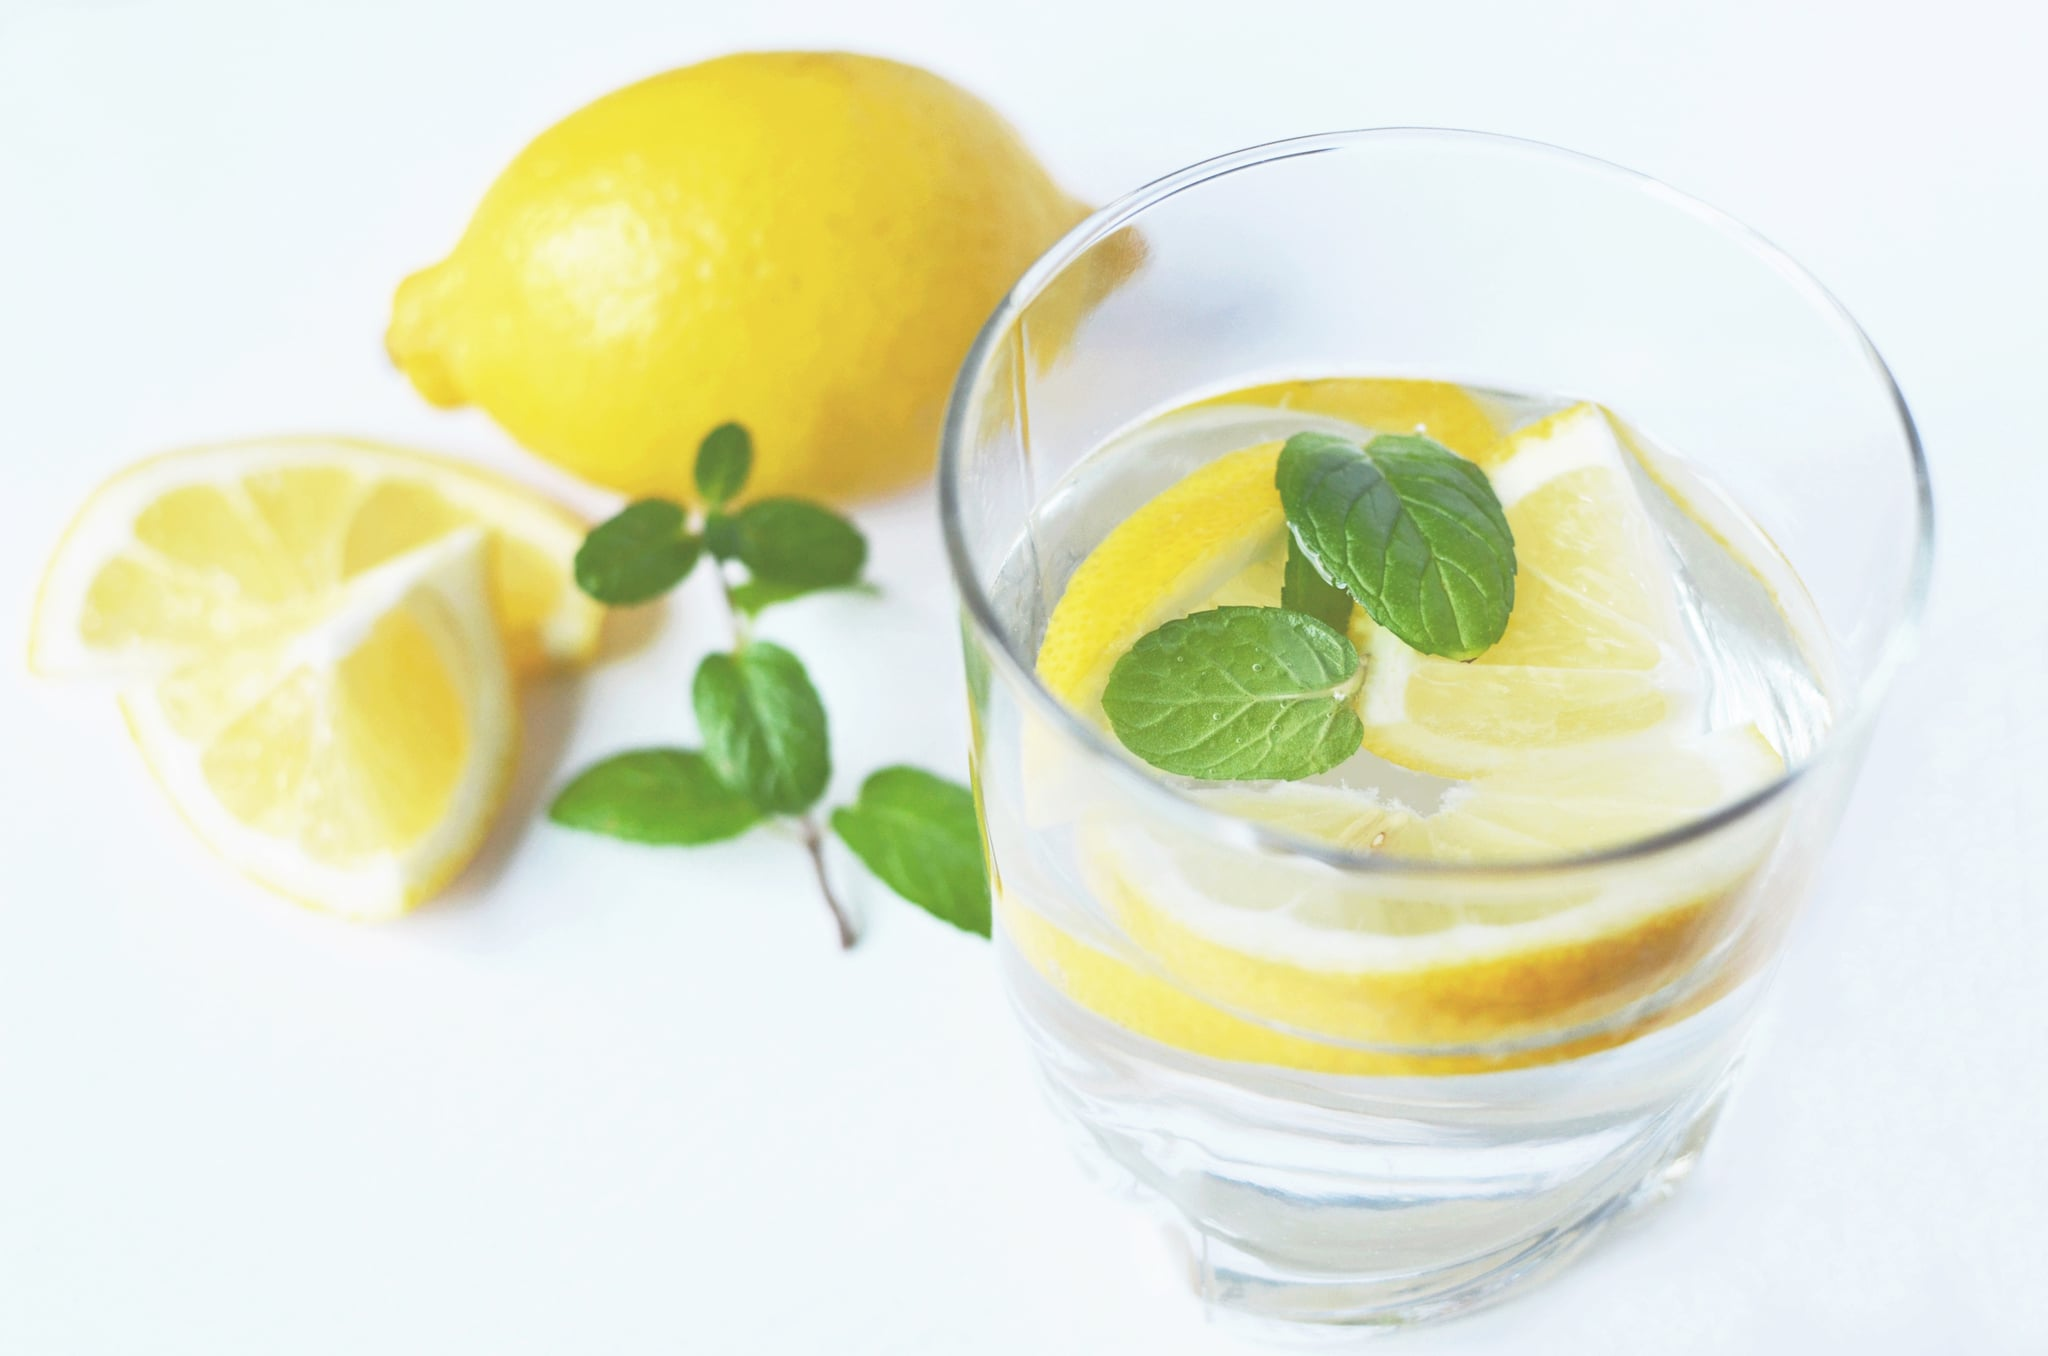 According to Experts, These Are the 4 Main Benefits Drinking Lemon Water Has on Your Skin